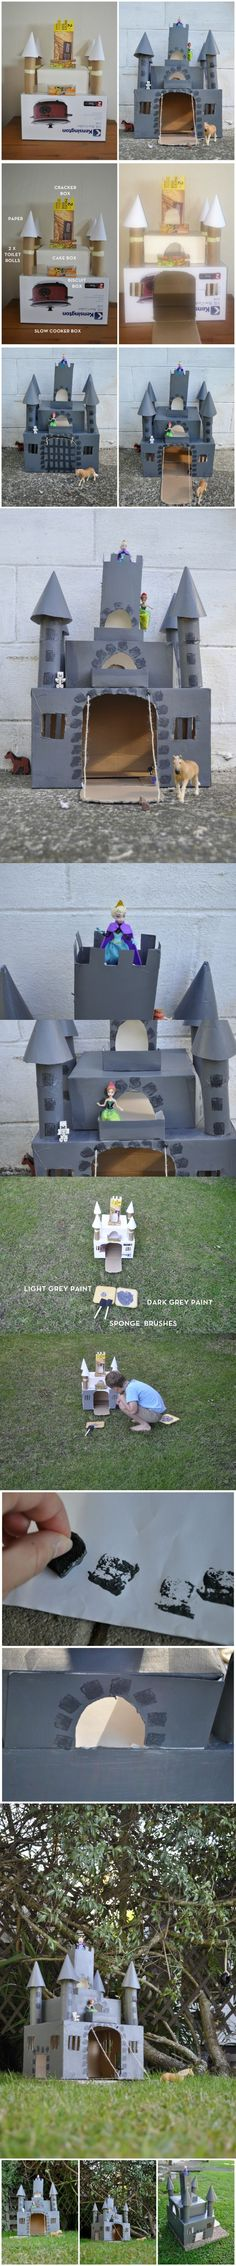 Cardboard castle with a working drawbridge! Cardboard Crafts, Paper Crafts, Cardboard Castle, Diy For Kids, Crafts For Kids, School Projects, Diy Projects, Castle Project, Diy And Crafts